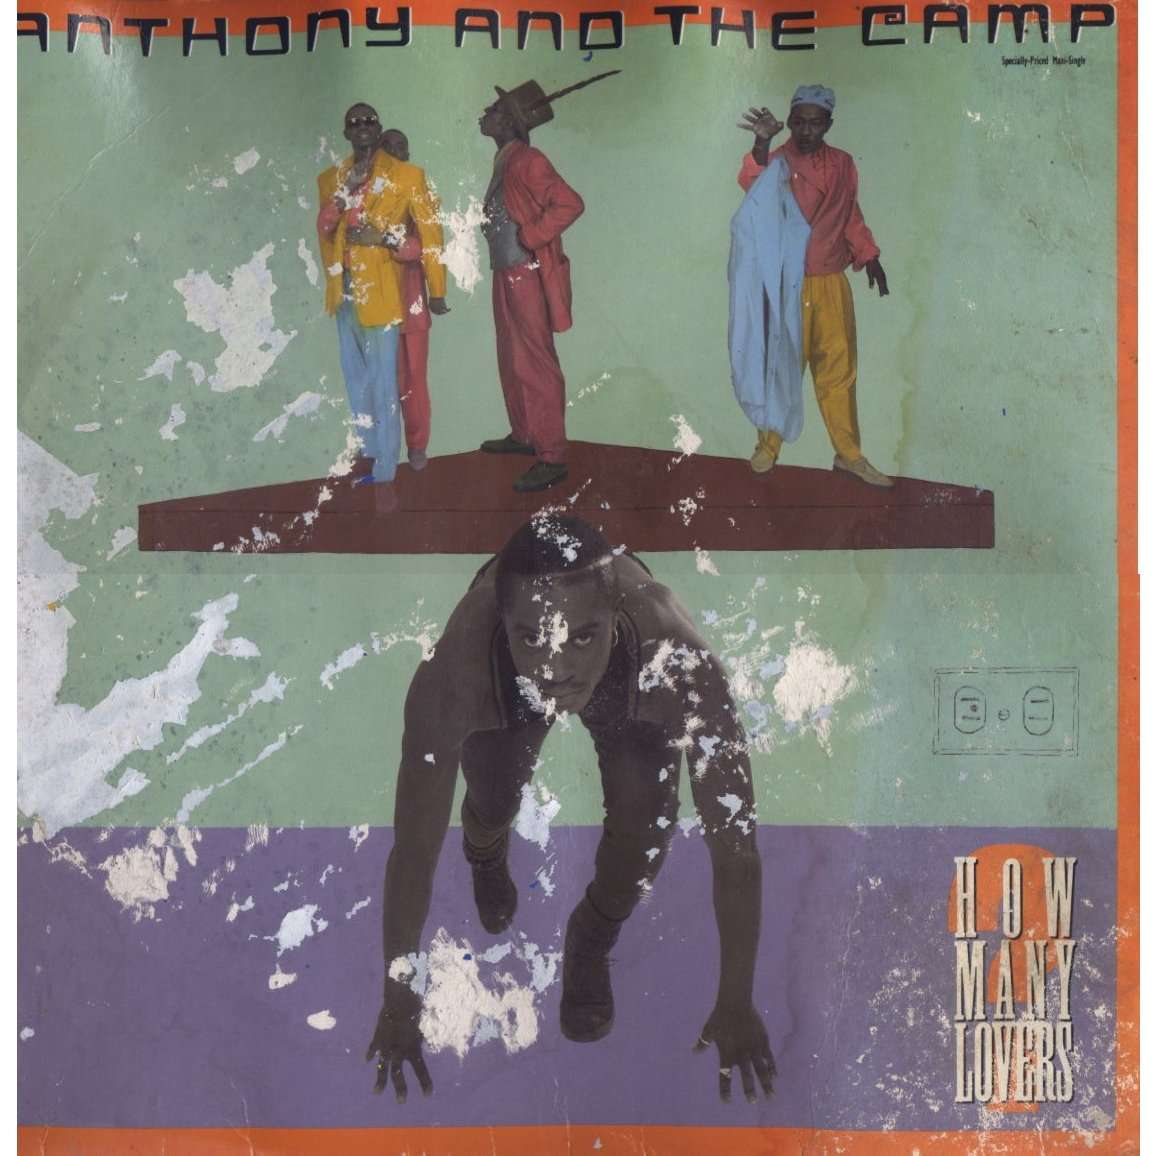 Average number of lovers for americans - Anthony And The Camp How Many Lovers